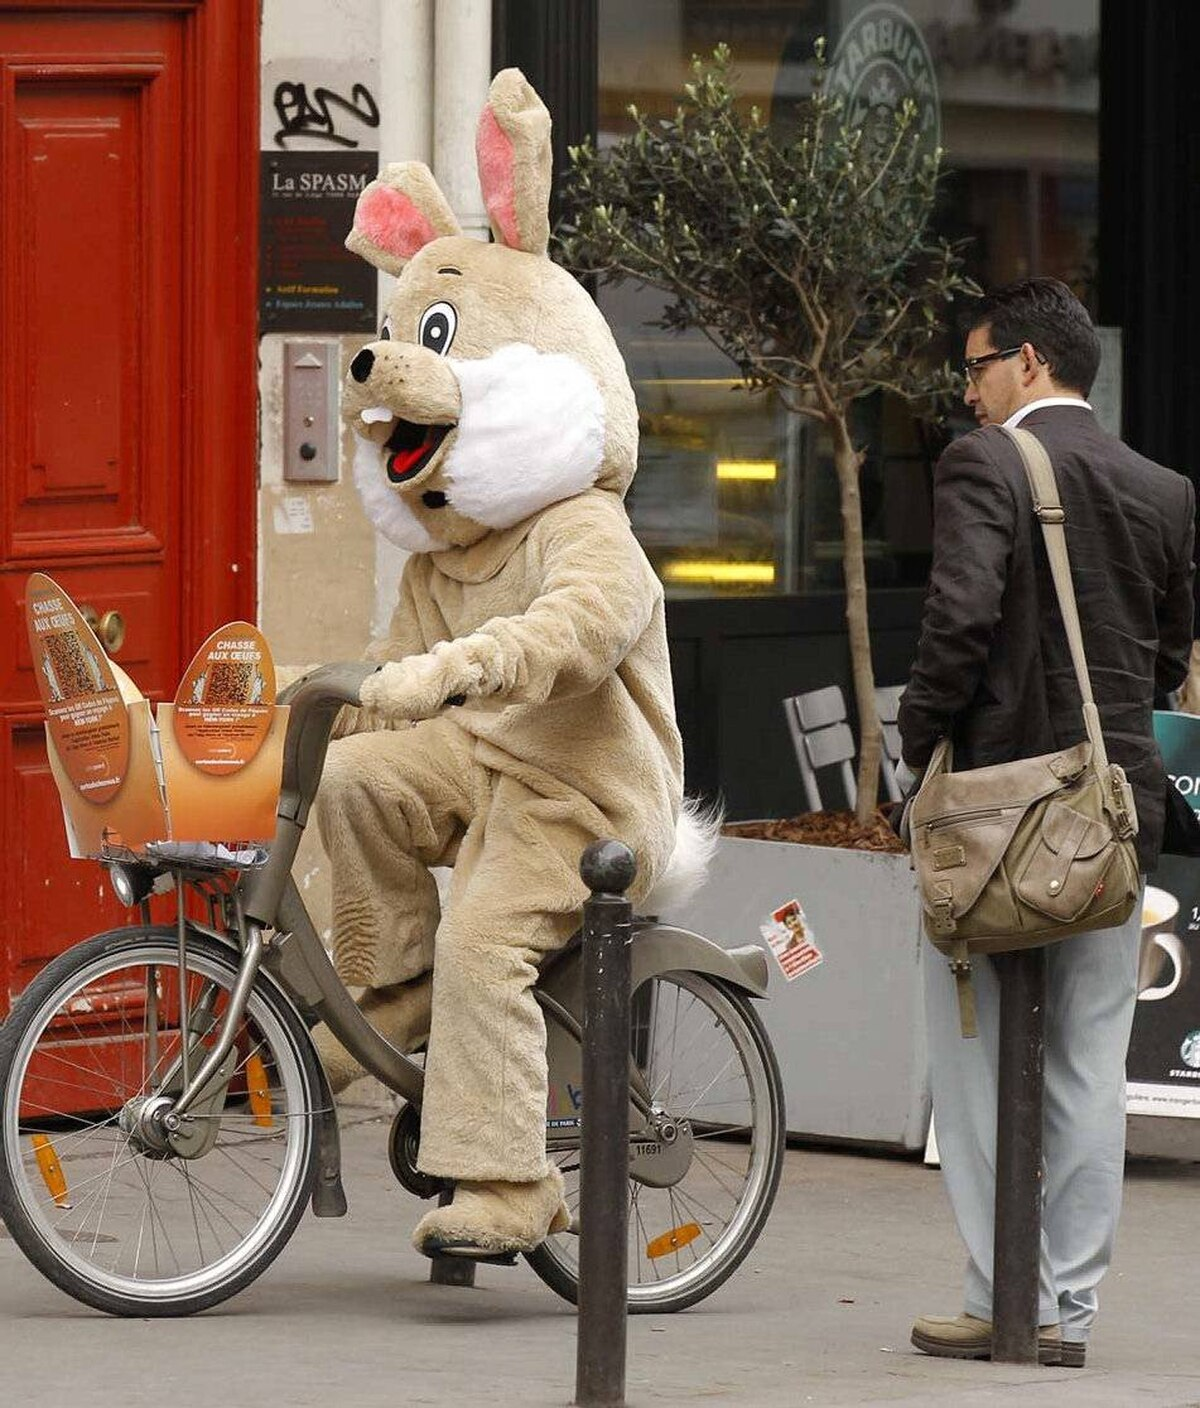 Meanwhile in France, a Frenchman ponders the semiotic symbolism of a brown Easter rabbit on a bicycle in Paris and deduces that the existential dread with which he has lived since childhood has now exploded in his consciousness and the rabbit is, in fact, a hallucination warning him, like all other French hallucinations, to be less faithful to his wife.